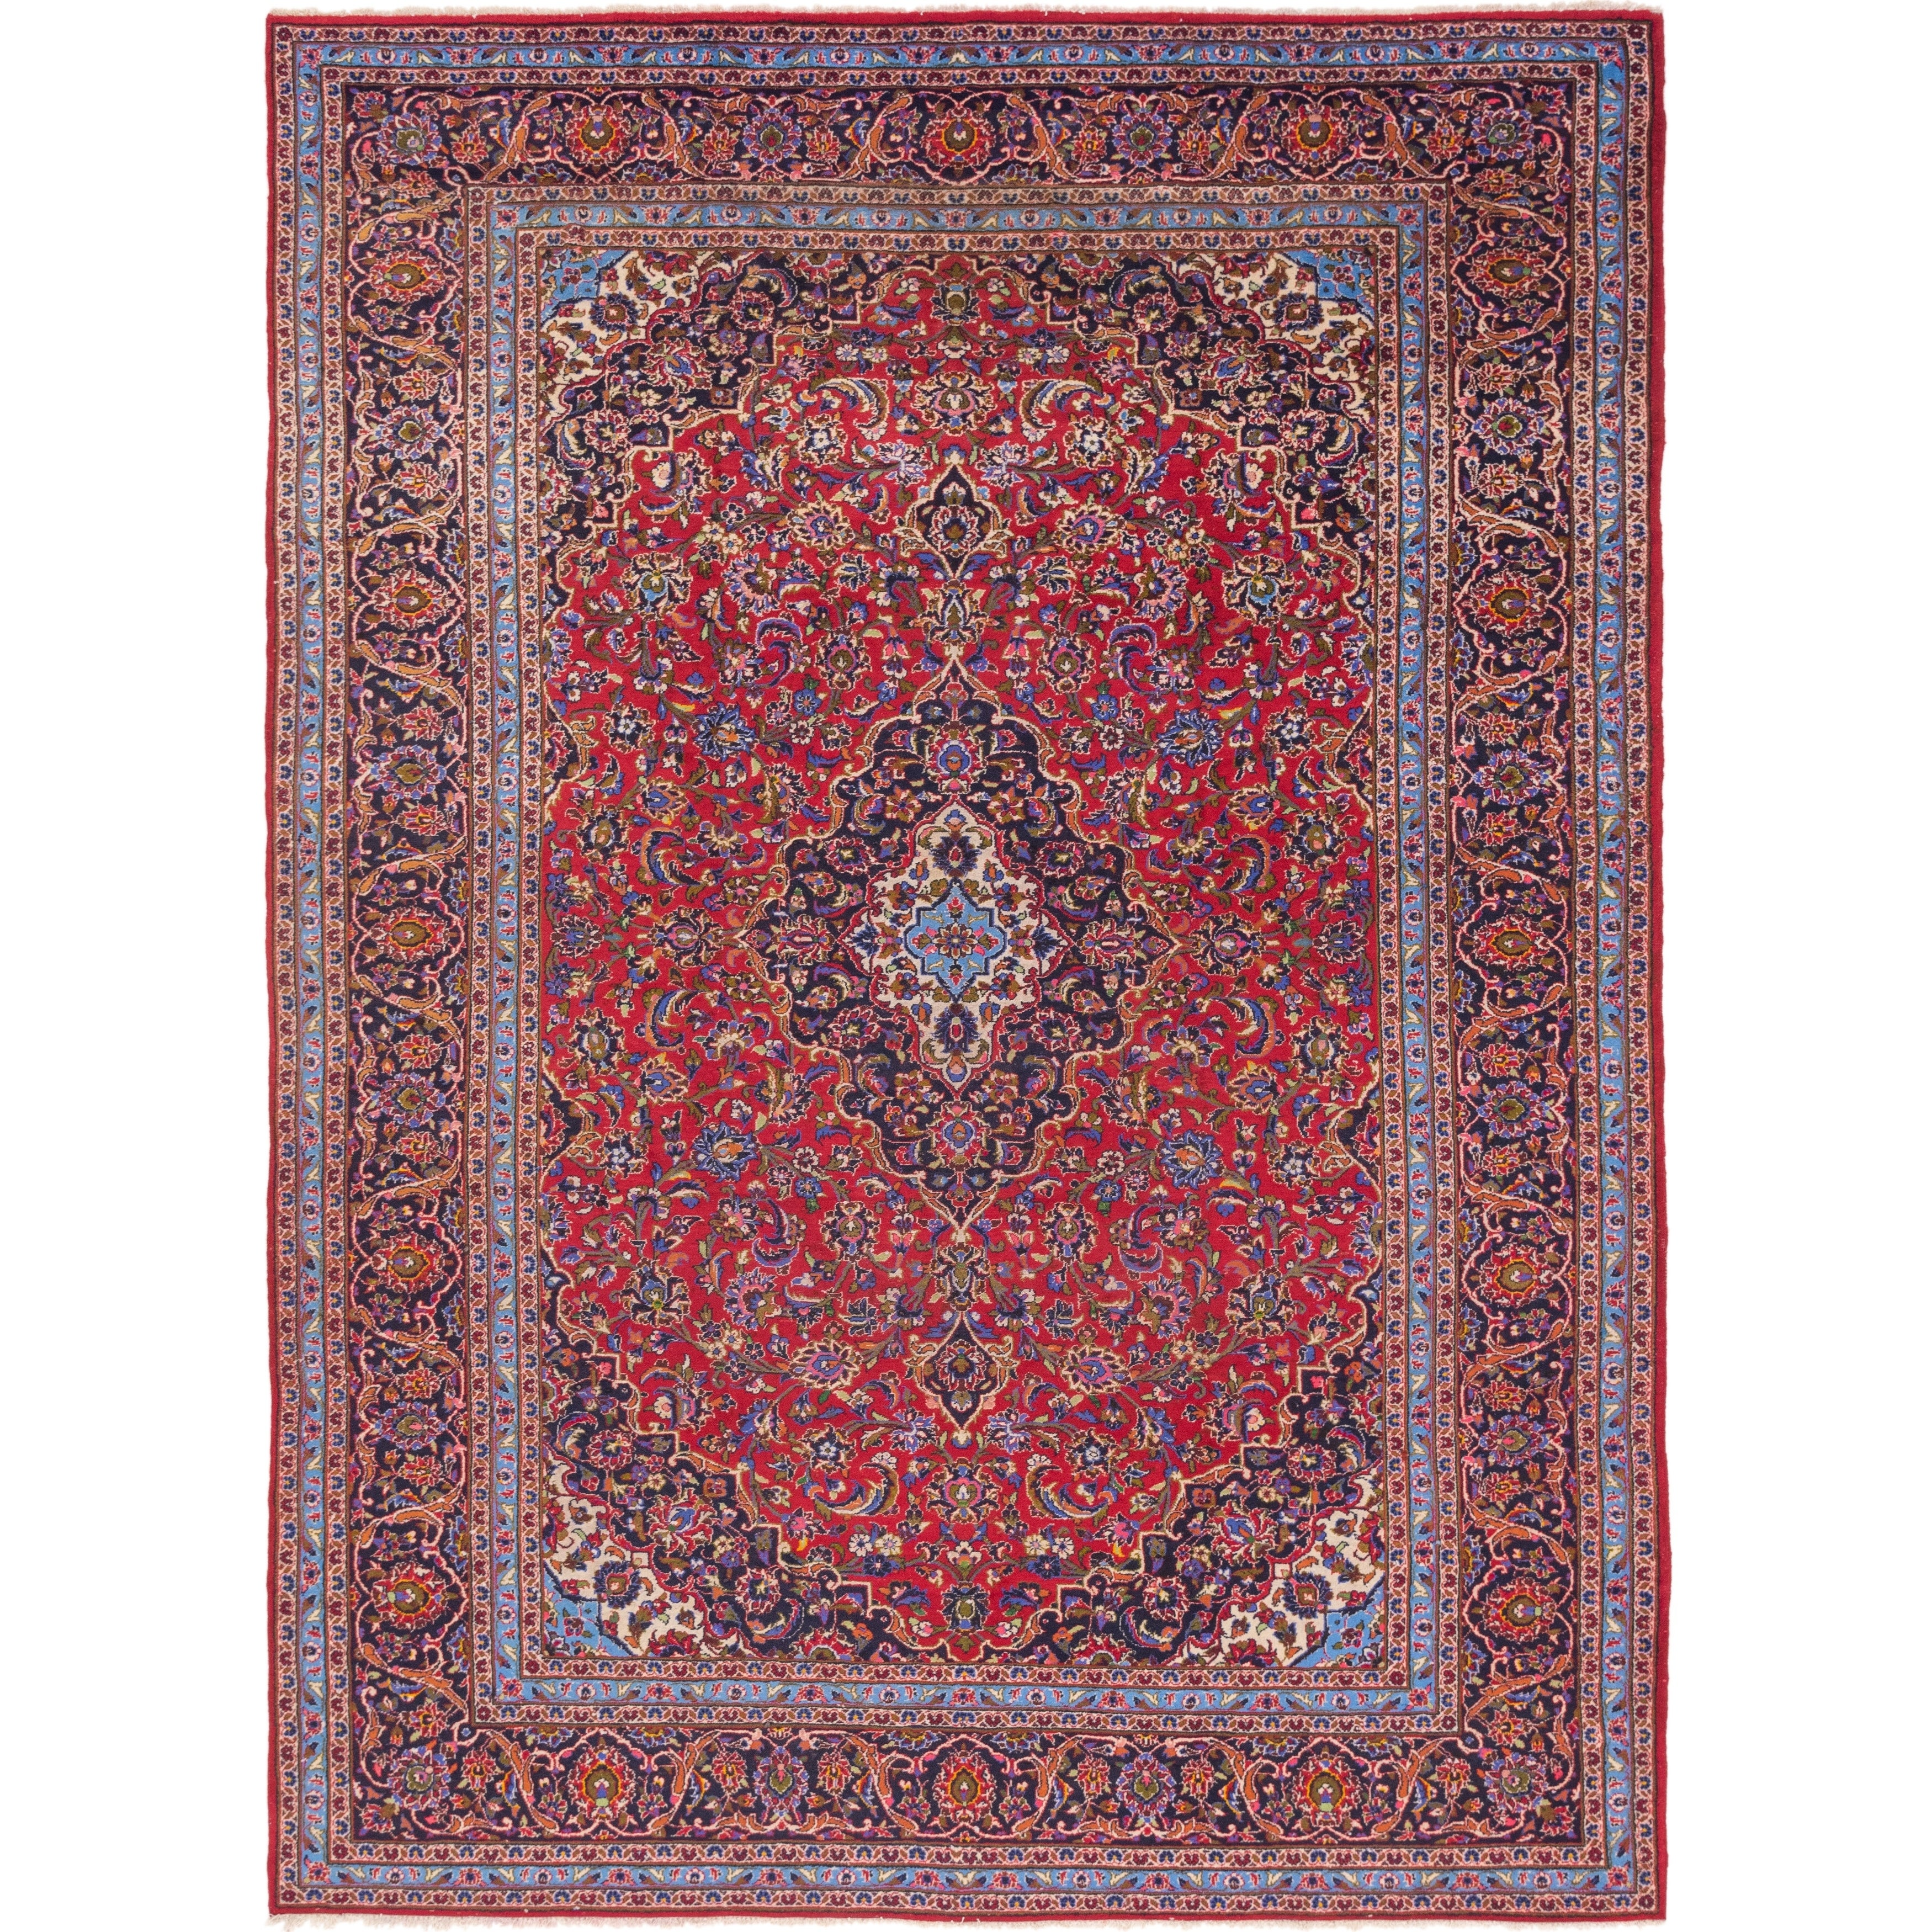 Hand Knotted Kashan Semi Antique Wool Area Rug - 9 8 x 13 2 (Red - 9 8 x 13 2)